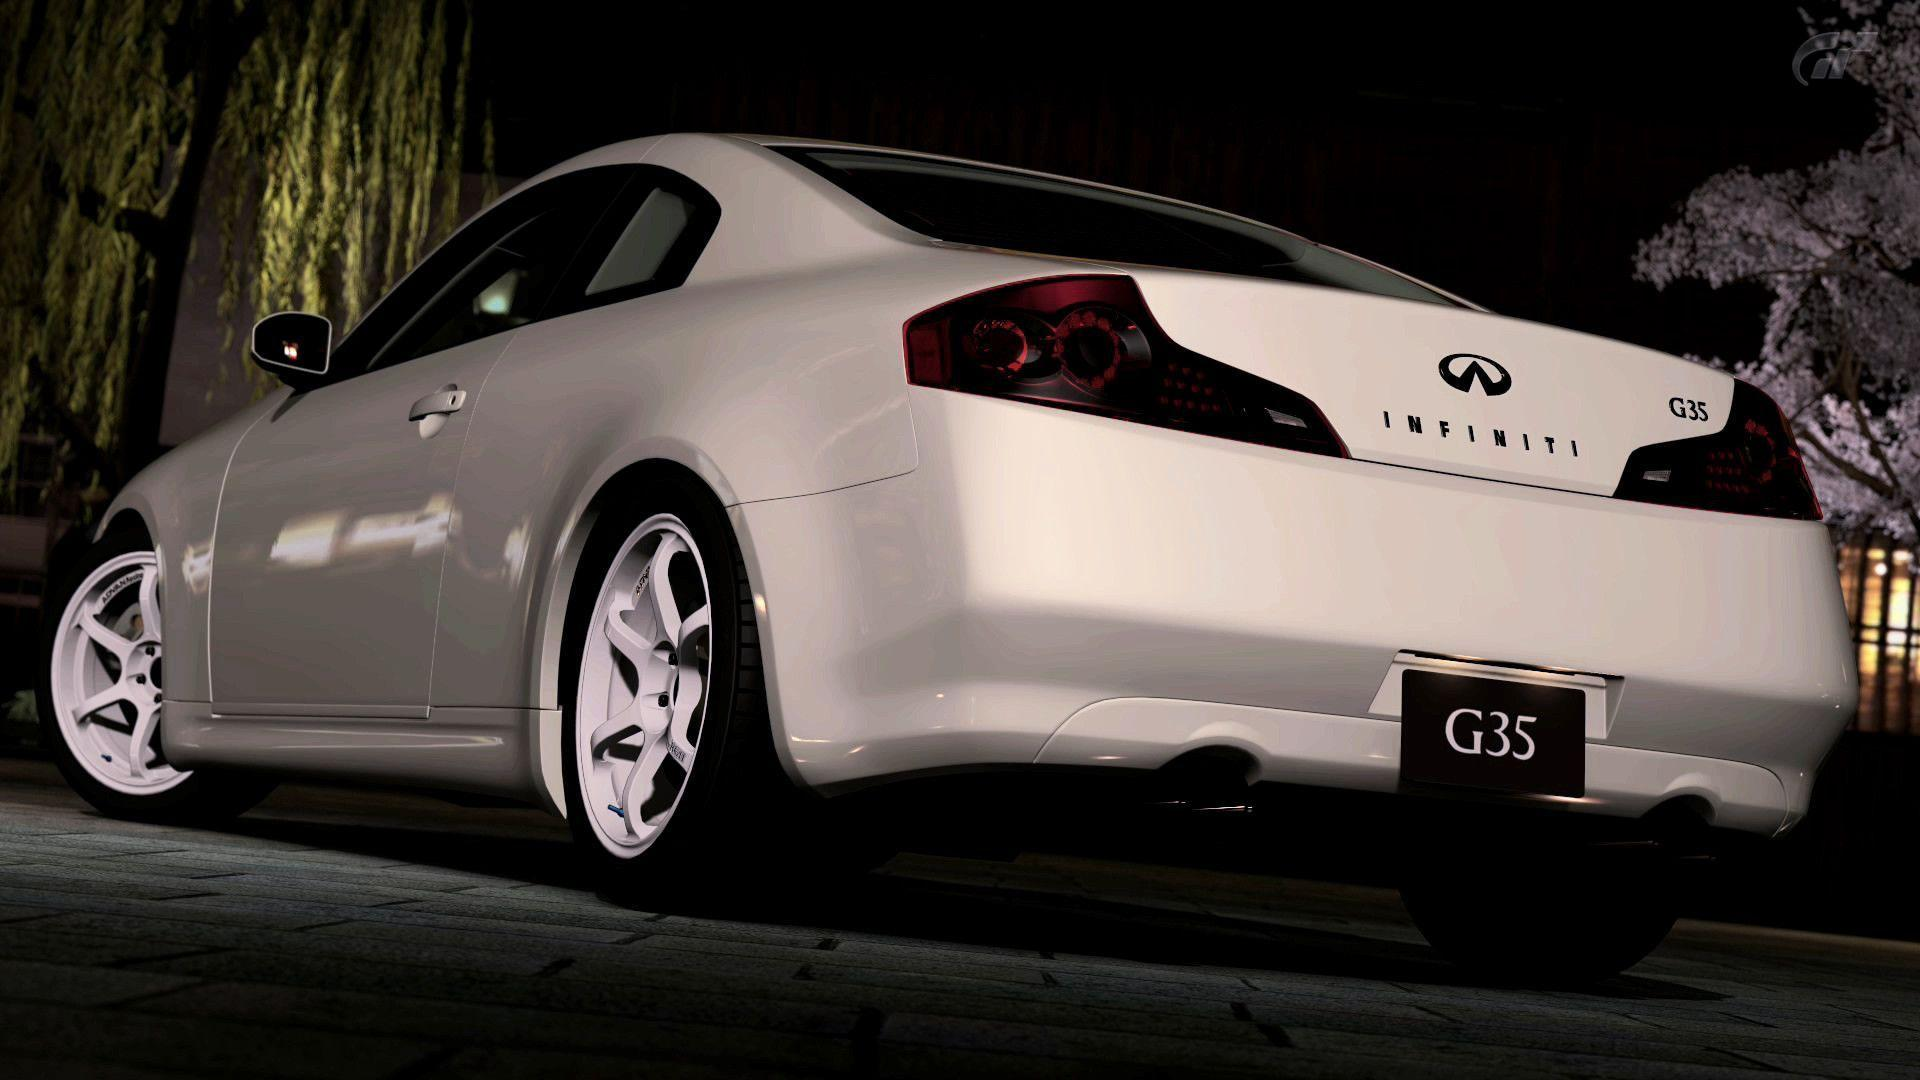 infiniti g35 coupe wallpapers wallpaper cave. Black Bedroom Furniture Sets. Home Design Ideas